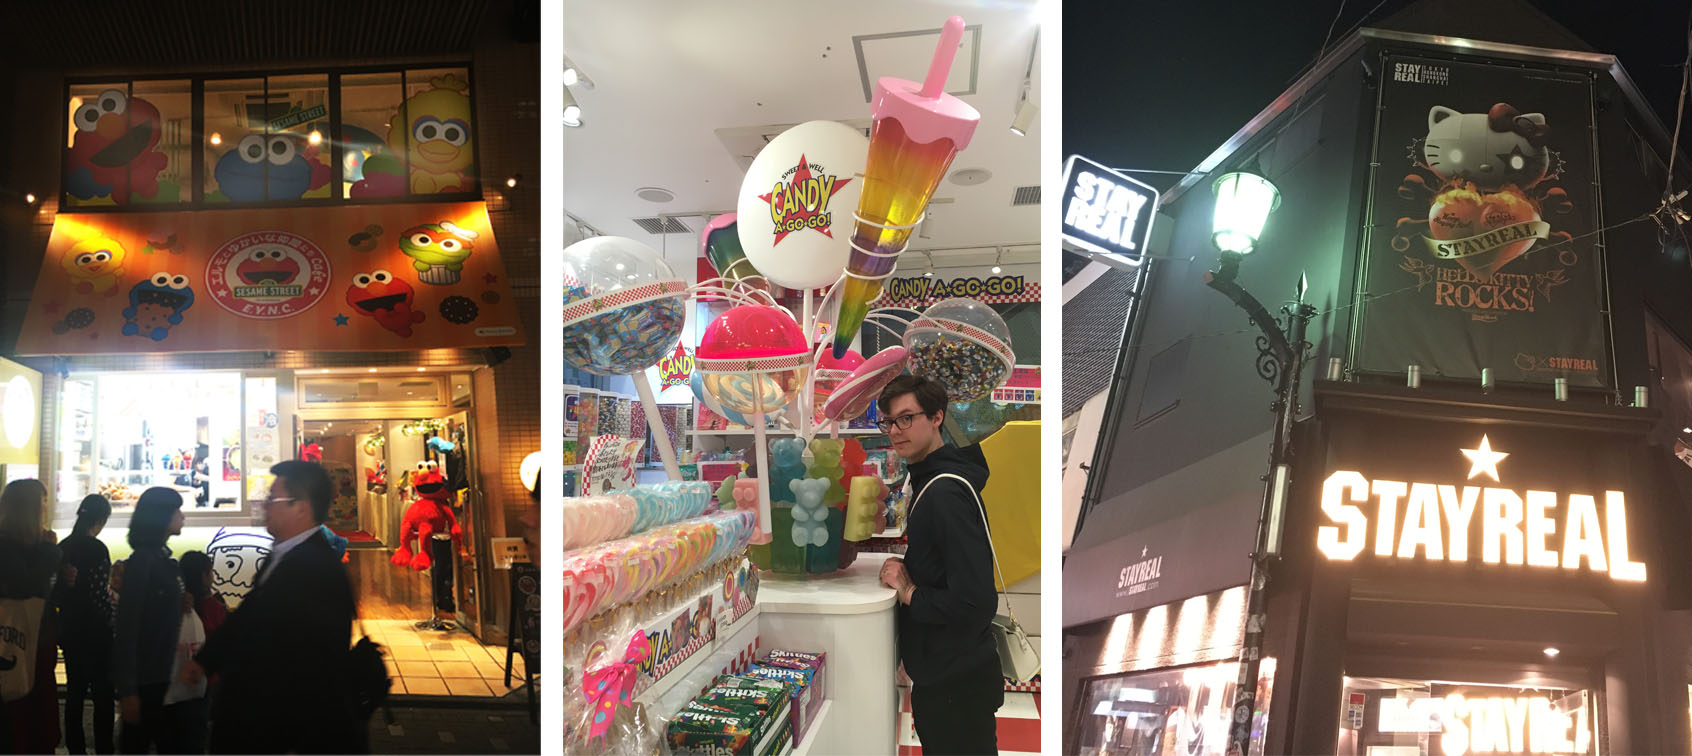 Baby Sesame Street Store, Michael in a candy store, and this heavy metal Hello Kitty. Stay Real.